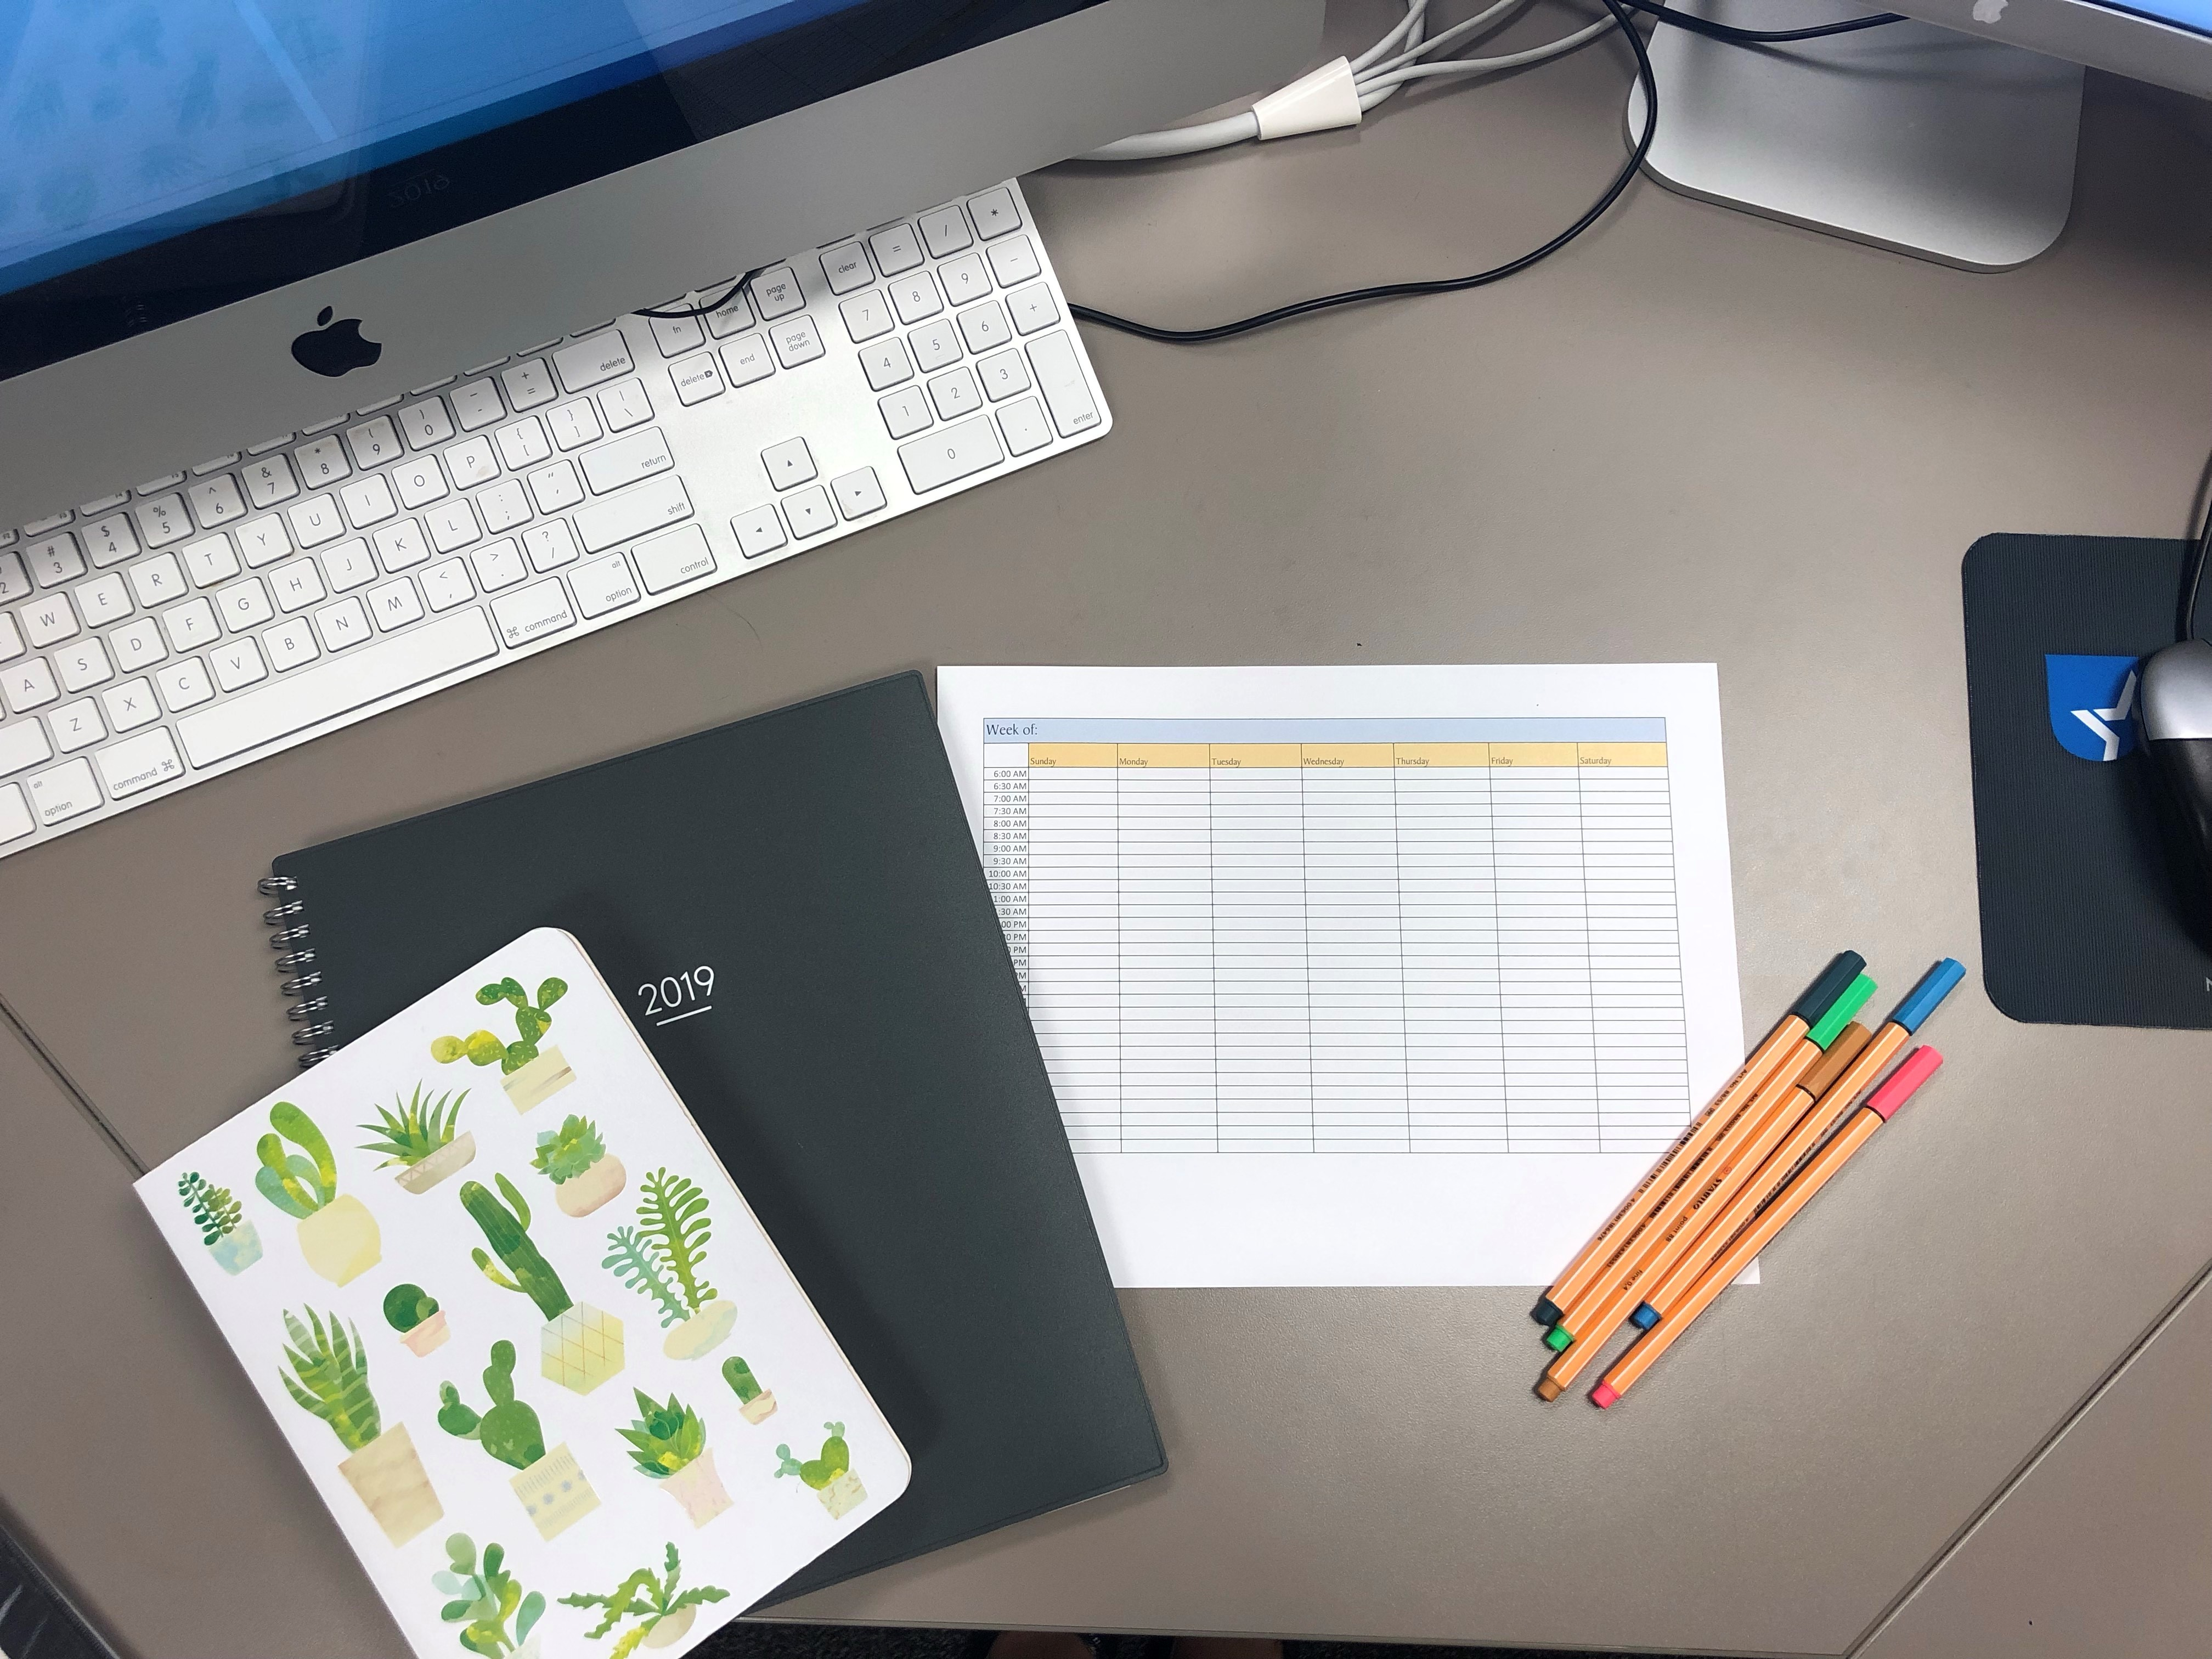 This picture shows an example of what it may look like when you sit down and get organized. There are colored pens for color coordination, a time blocking template, a 2019 planner, and a notebook for a to-do list. Time blocked schedules can make you a more productive and effective professional or student.